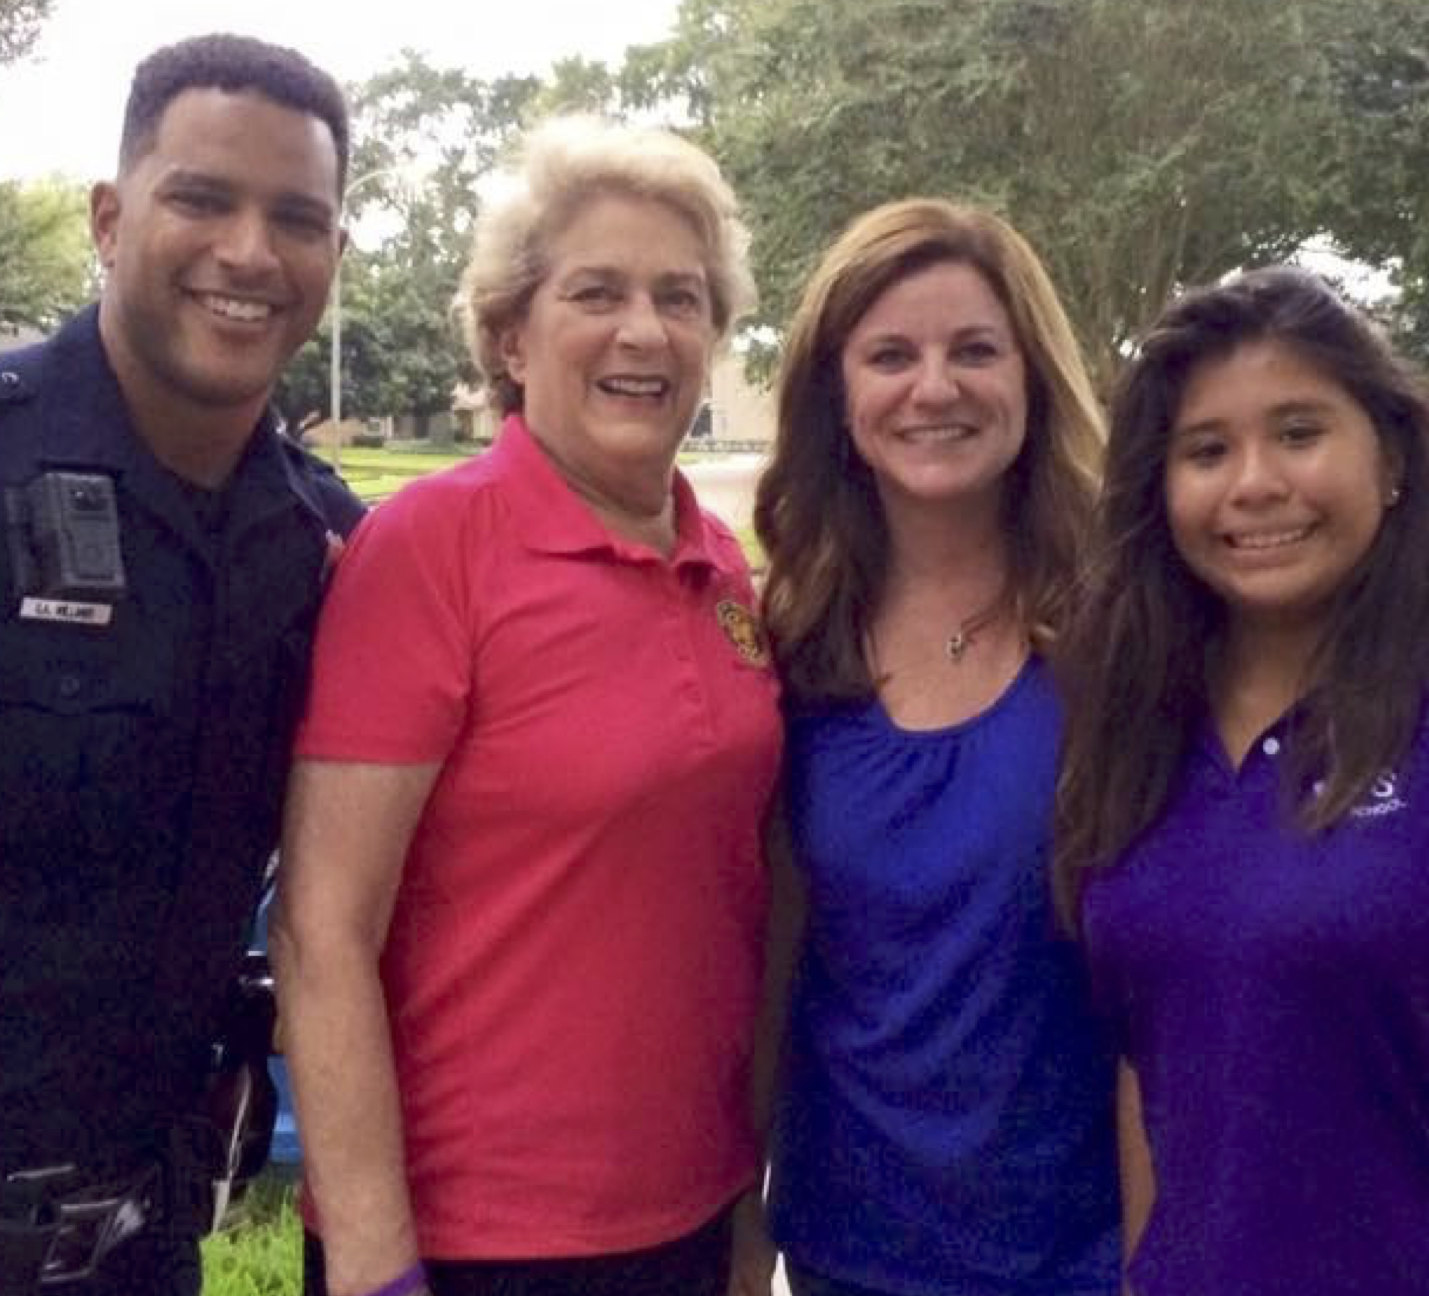 City Council Member Ellen Cohen poses with neighbors and Houston Police Department officer at National Night Out block party on Cindy Ln.